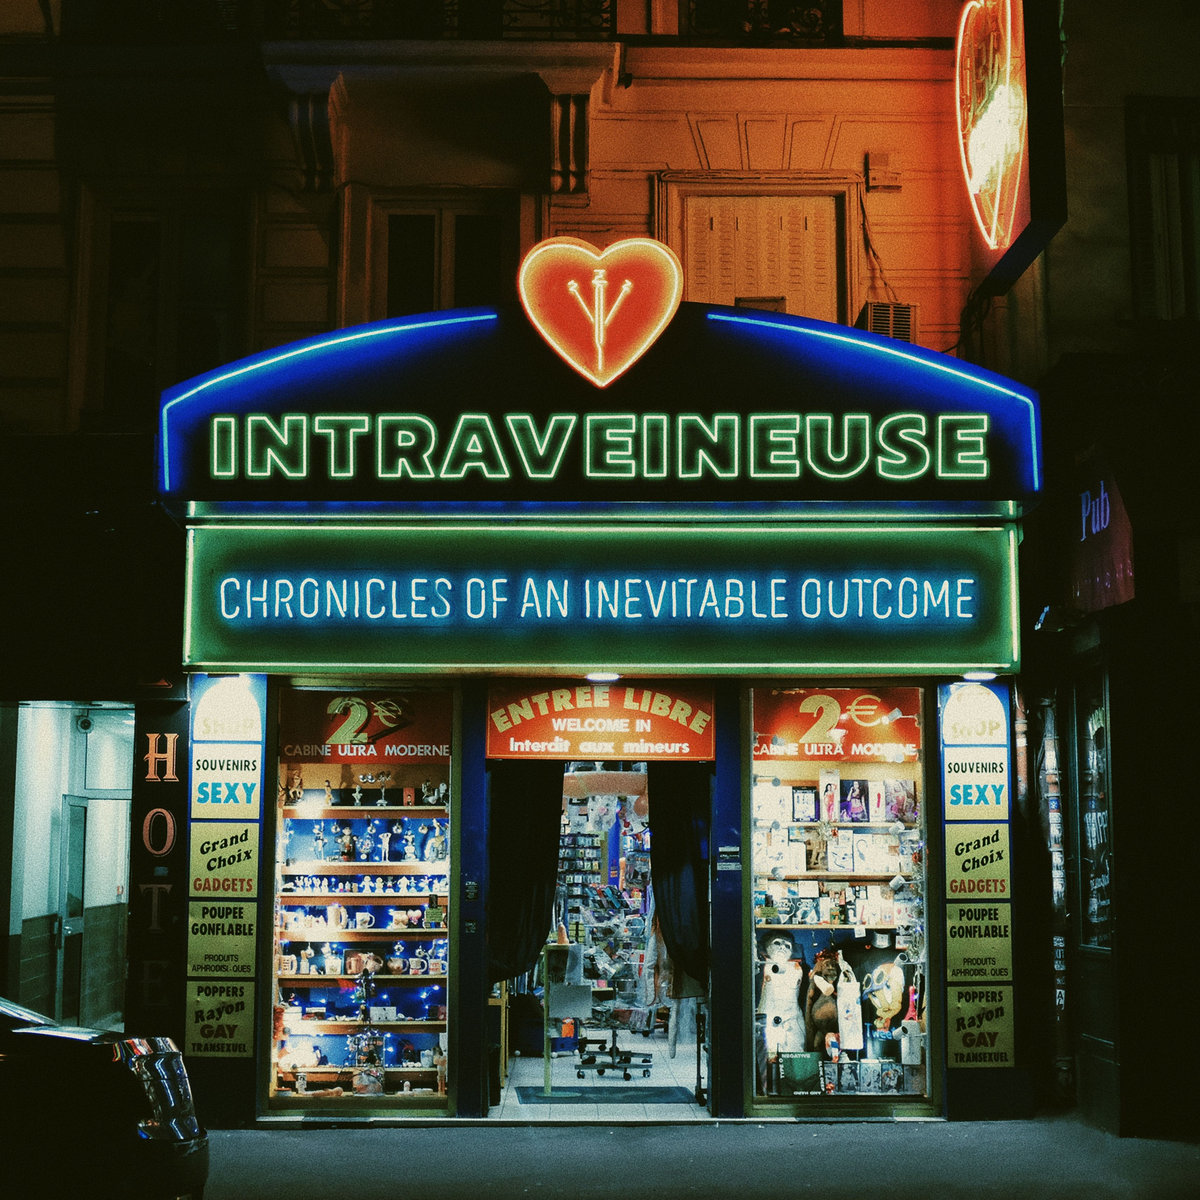 Intraveineuse: Chronicle of an Inevitable Outcome